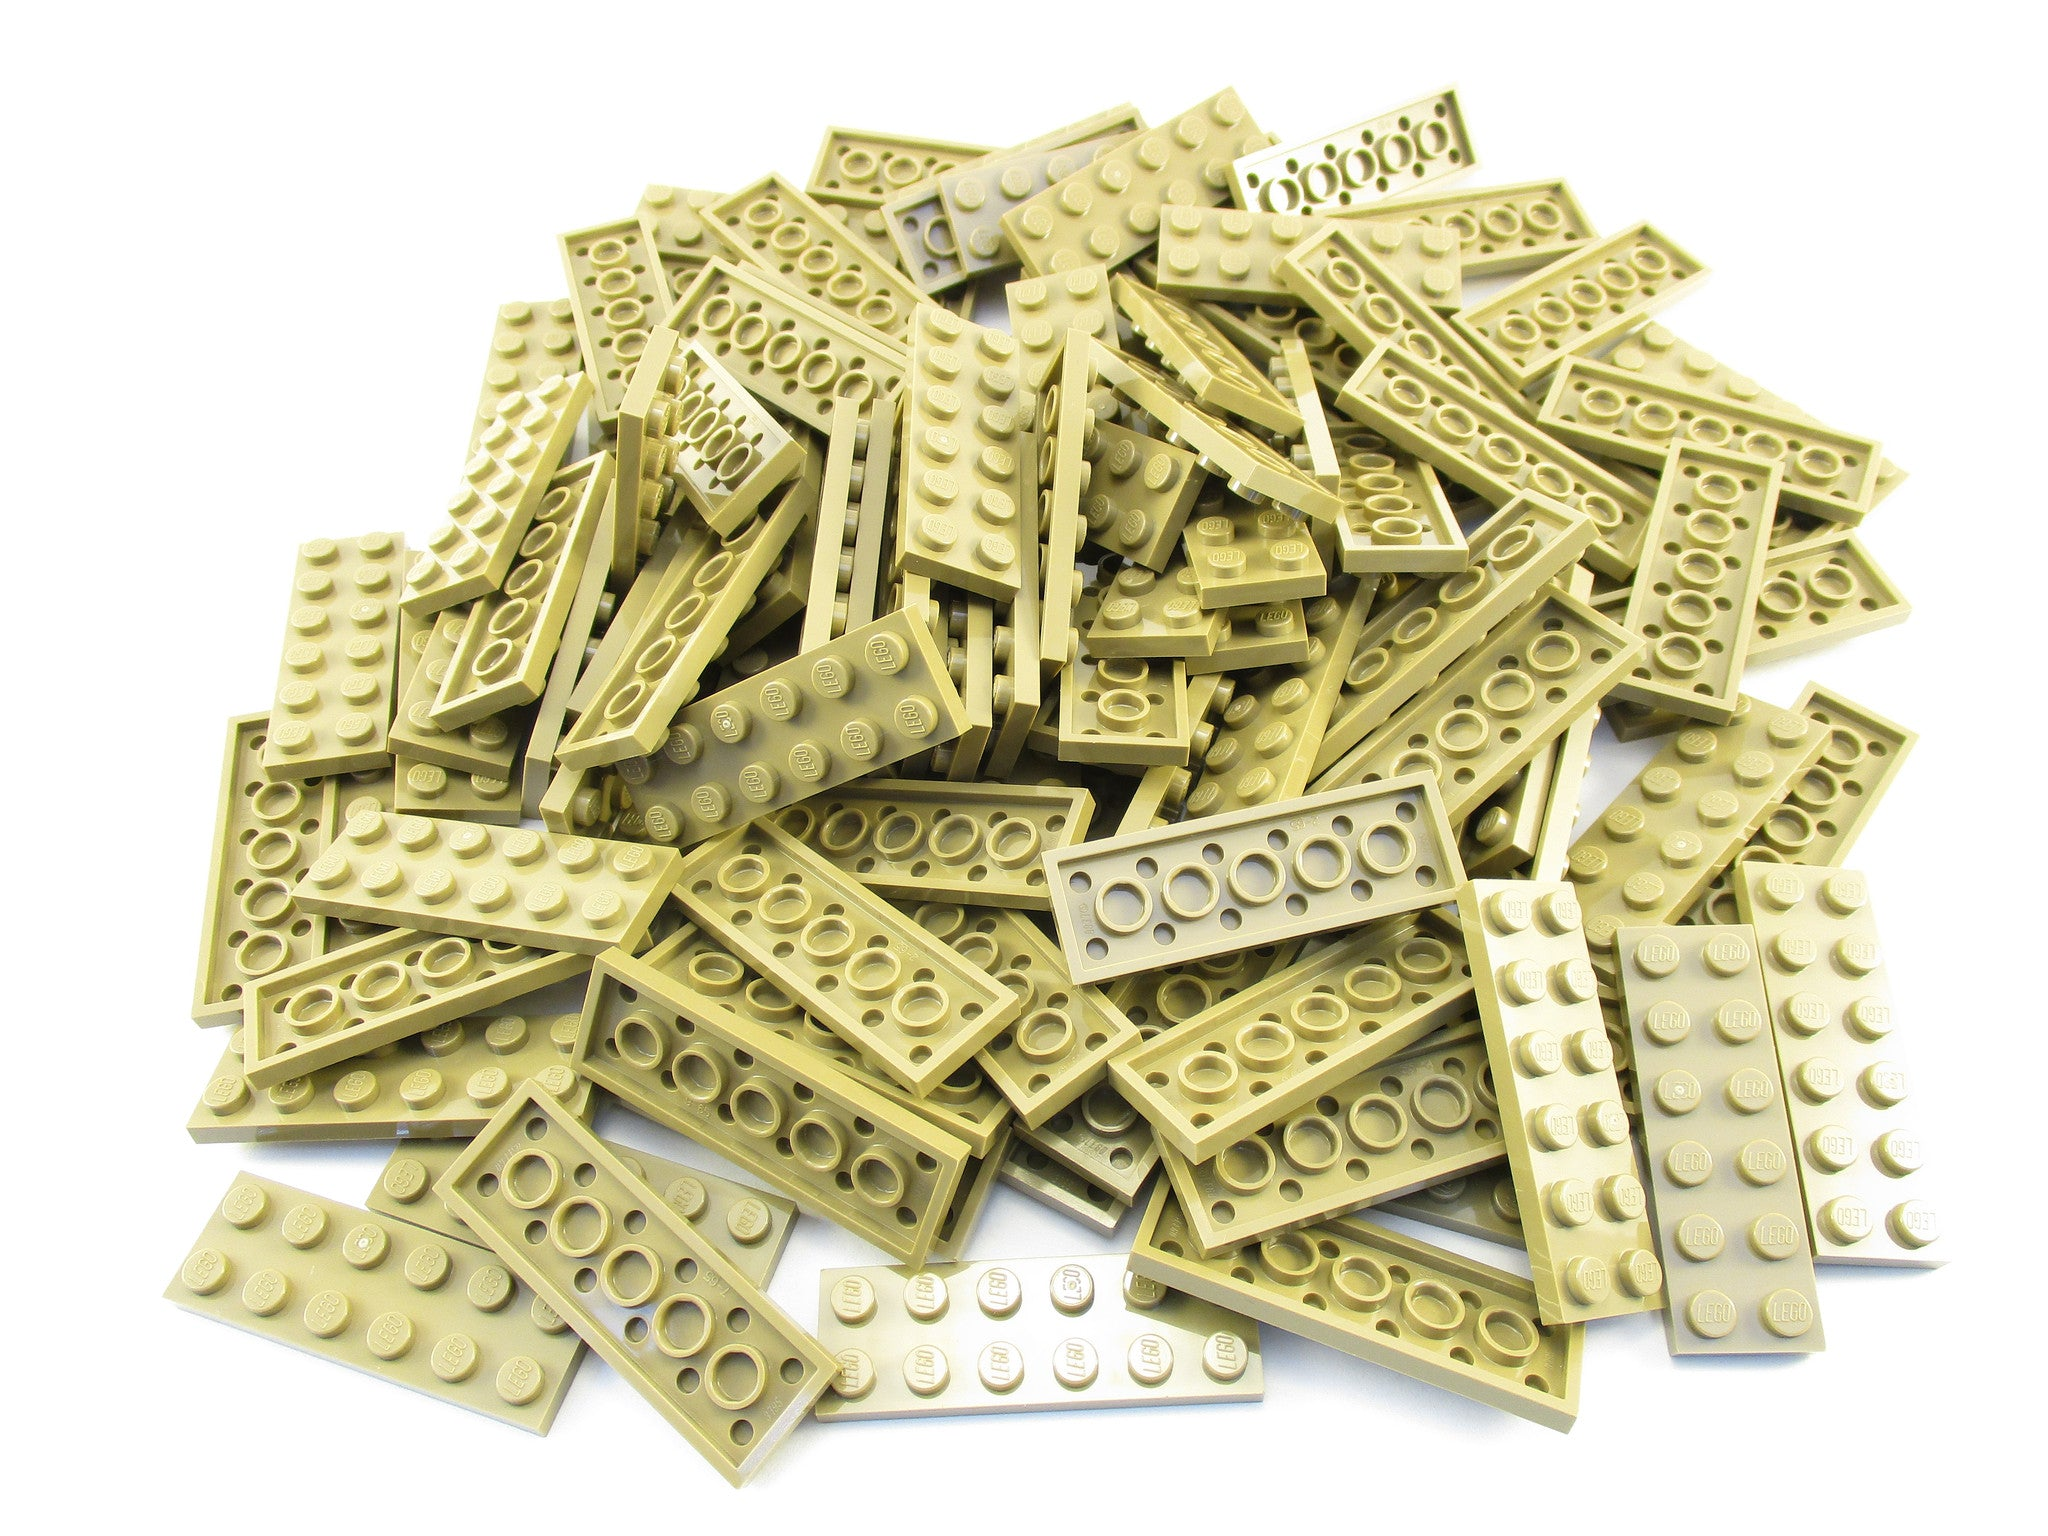 LEGO Dark Tan Plate 2x6 Lot of 100 Parts Pieces 3795